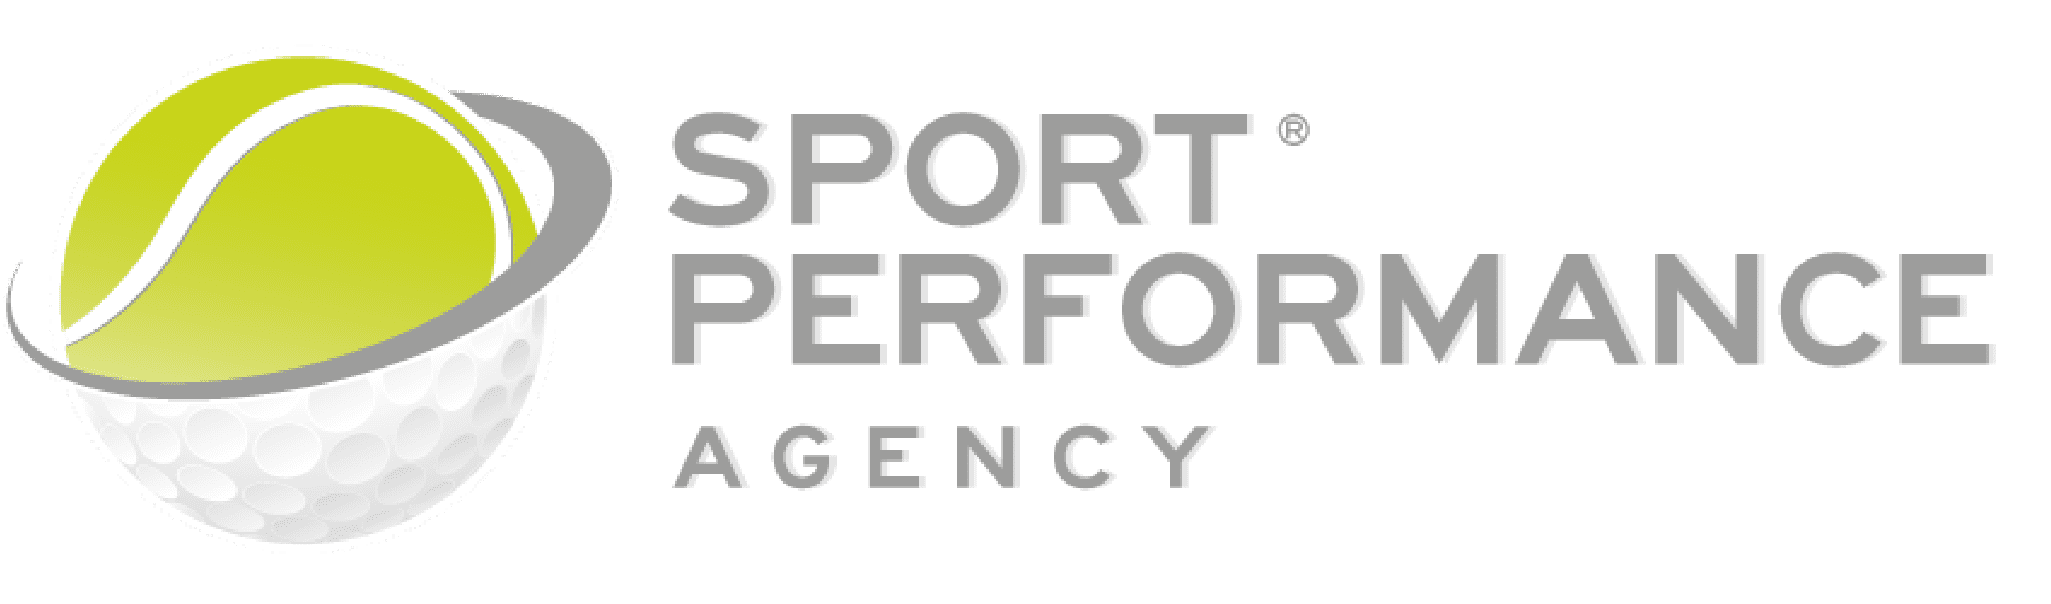 Sport Performance Agency